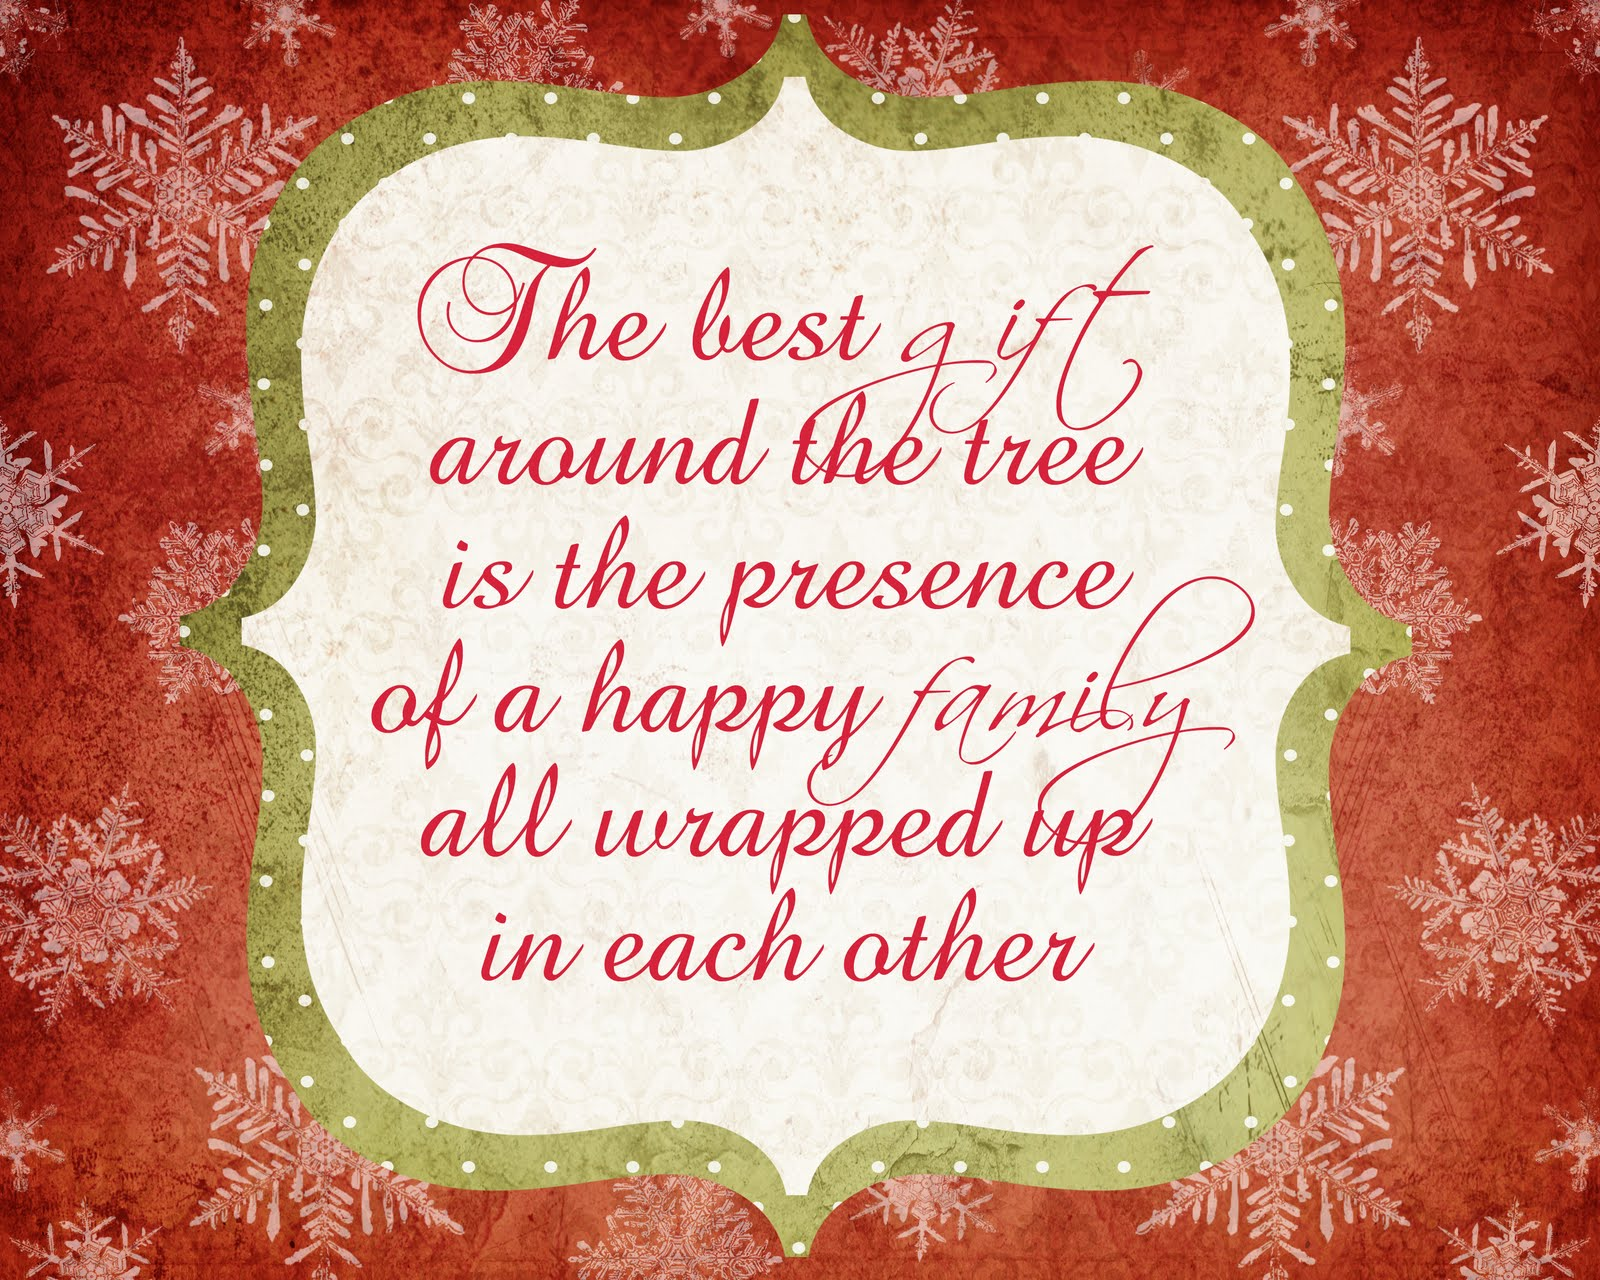 Christmas List Quotes Quotesgram: Gifts At Christmas Quotes. QuotesGram